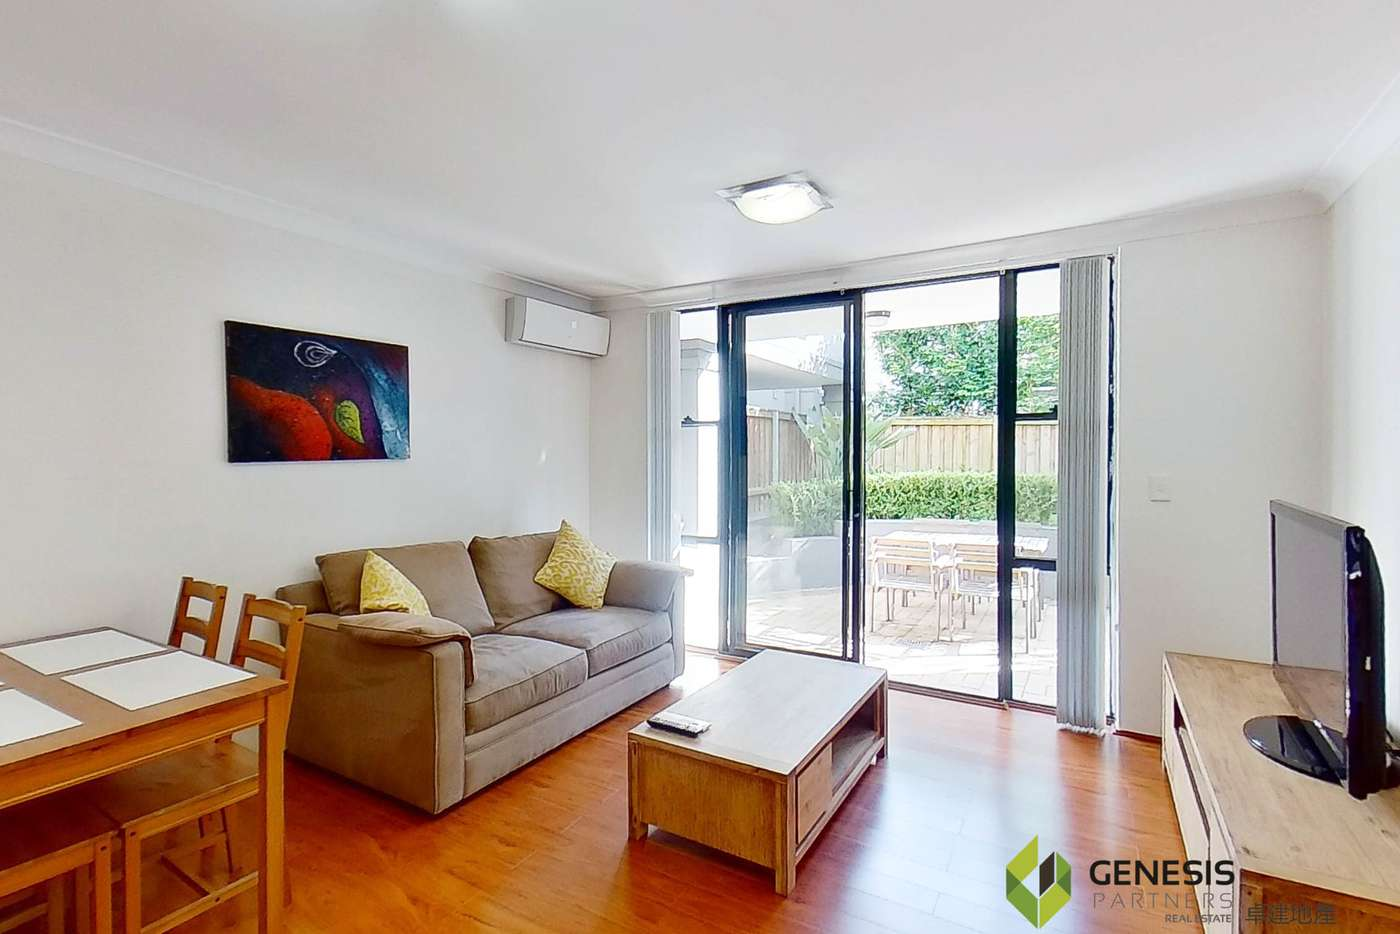 Main view of Homely apartment listing, 13/5-17 Pacific Highway, Roseville NSW 2069